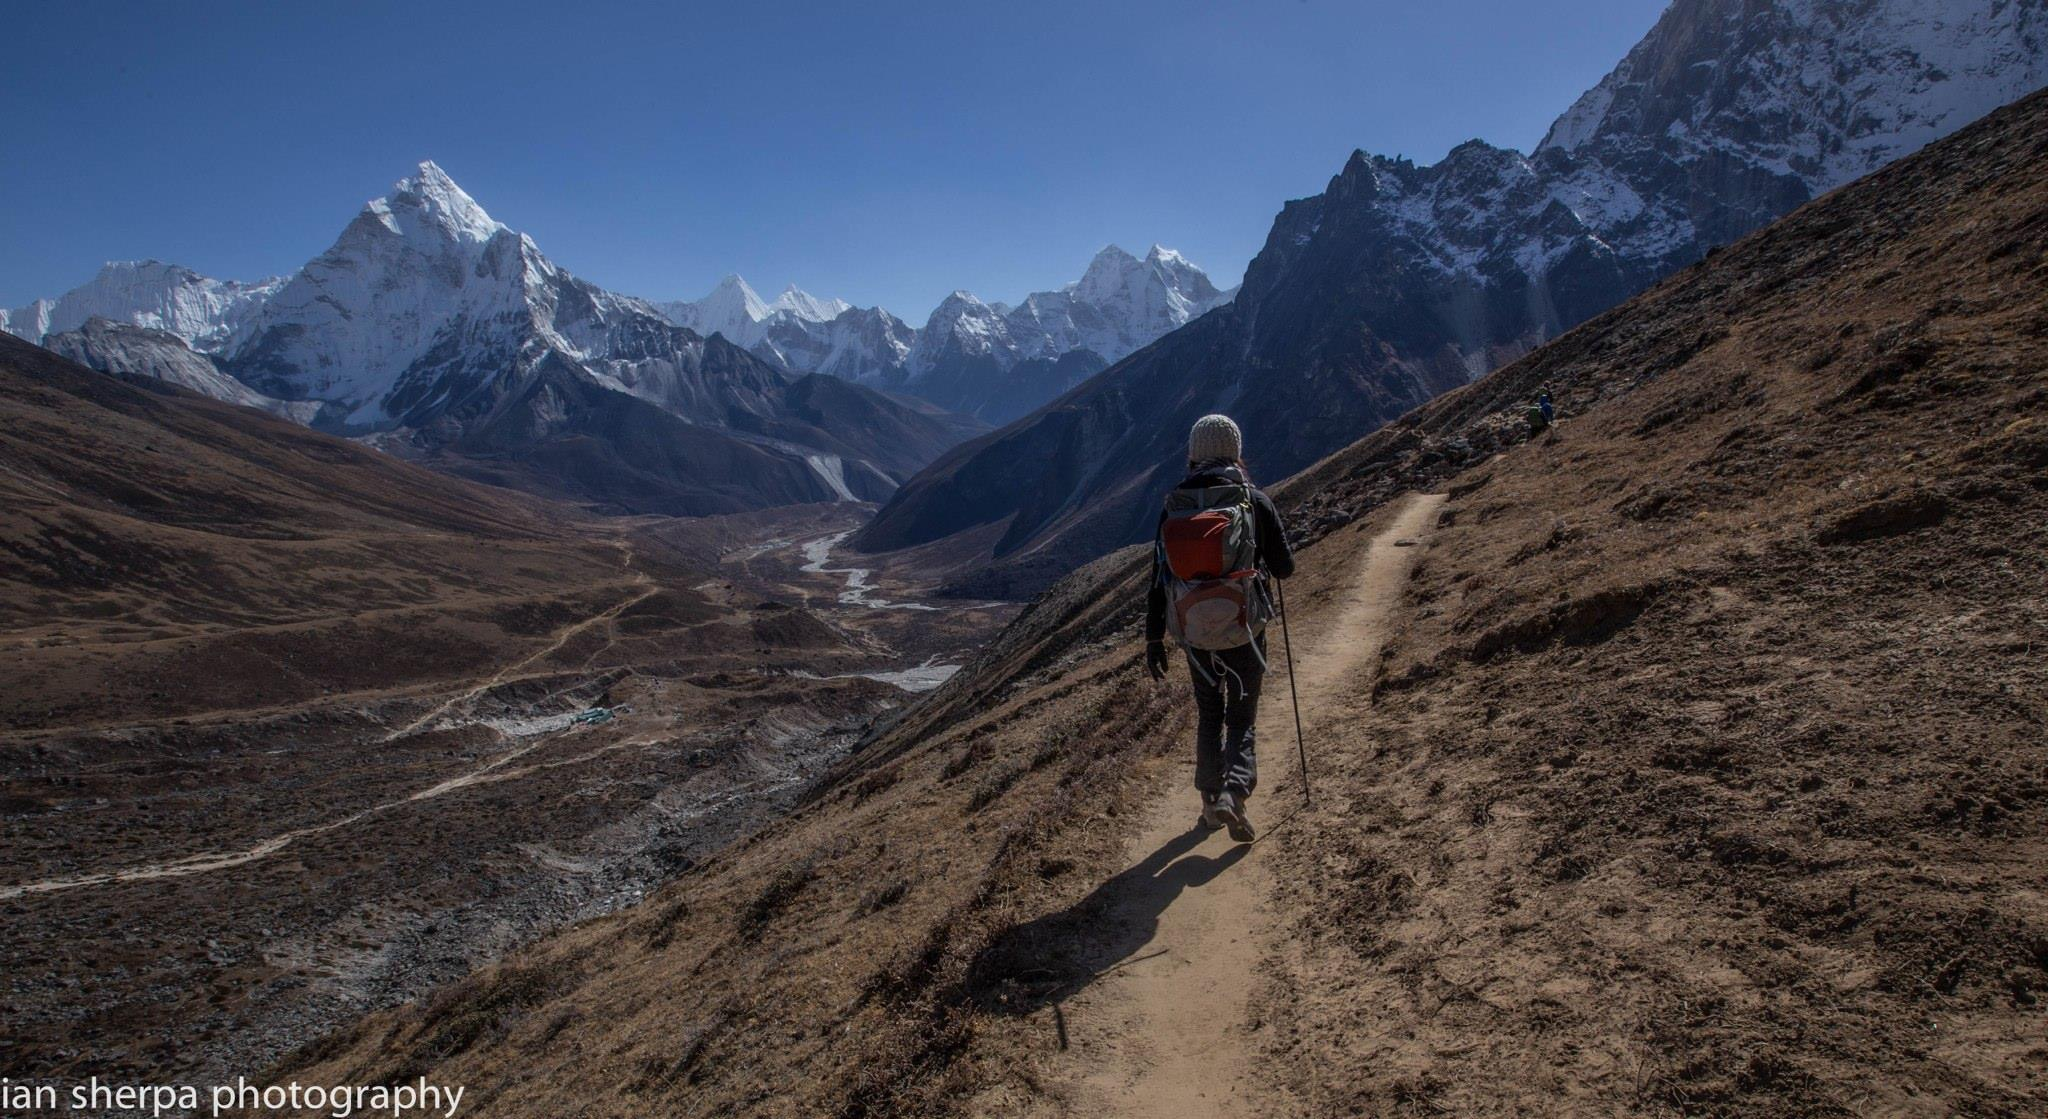 Heading home via Gokyo Valley, photo by Ian Chung